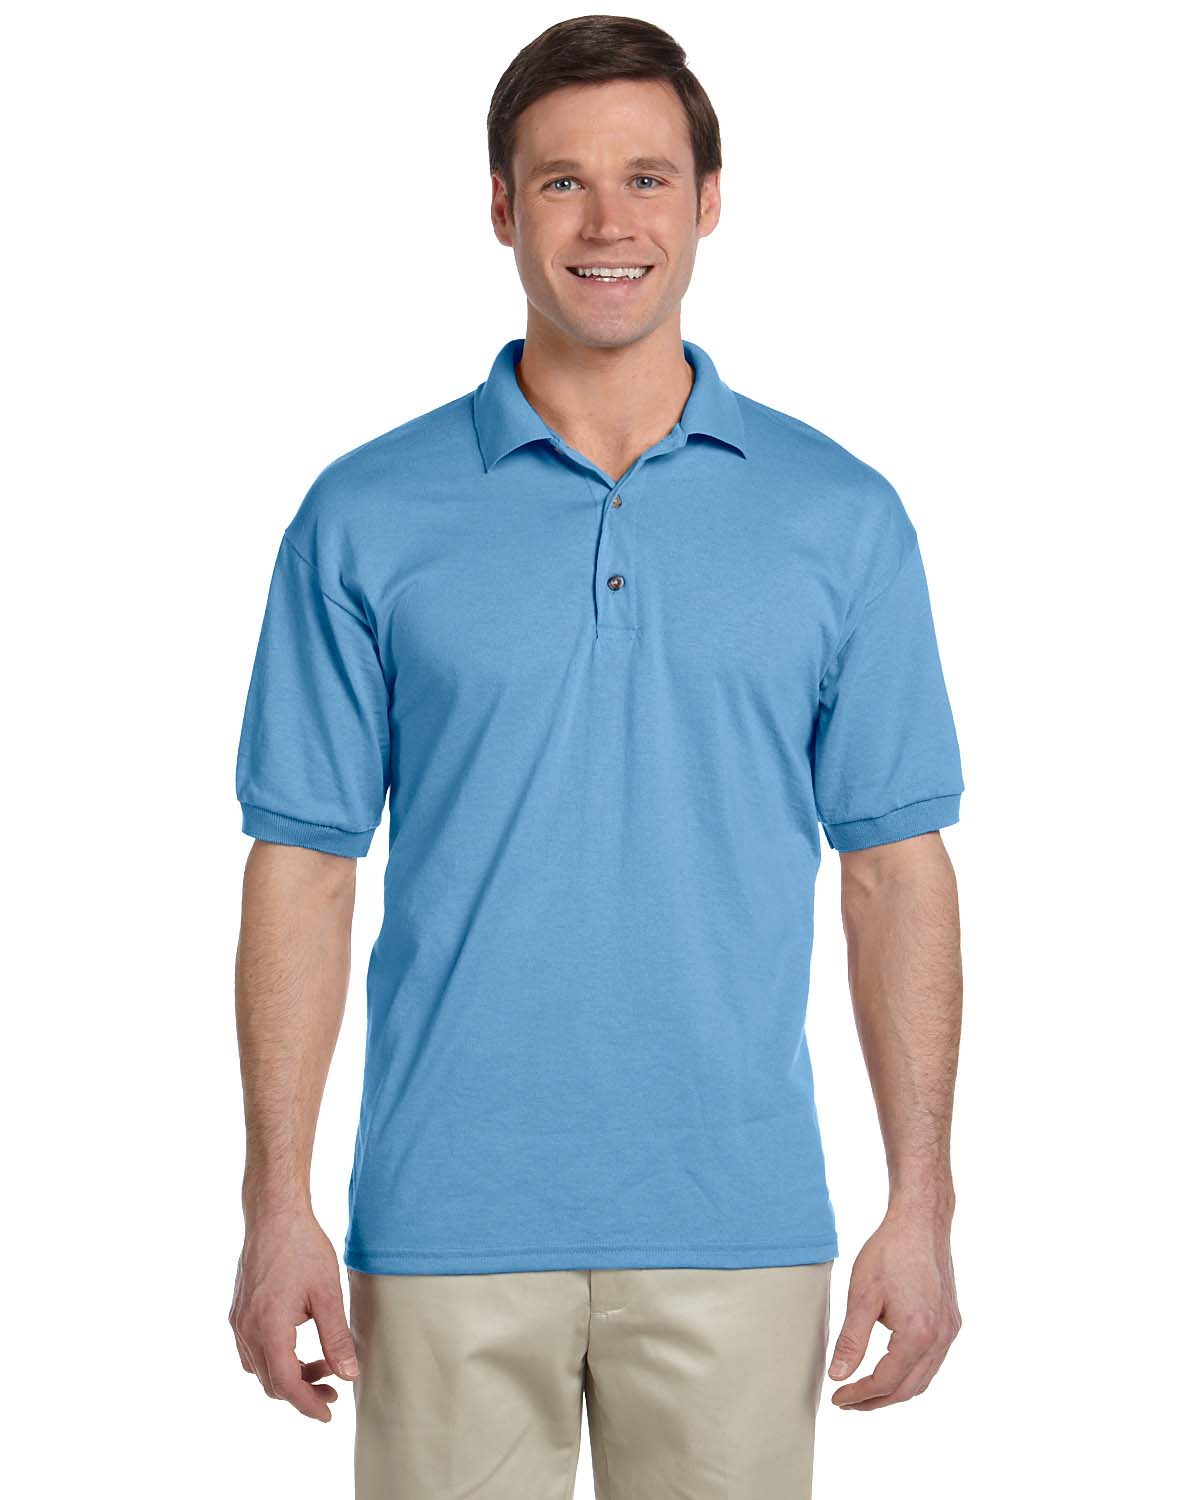 New gildan men 39 s dryblend moisture wicking jersey polo for Men s polyester polo shirts